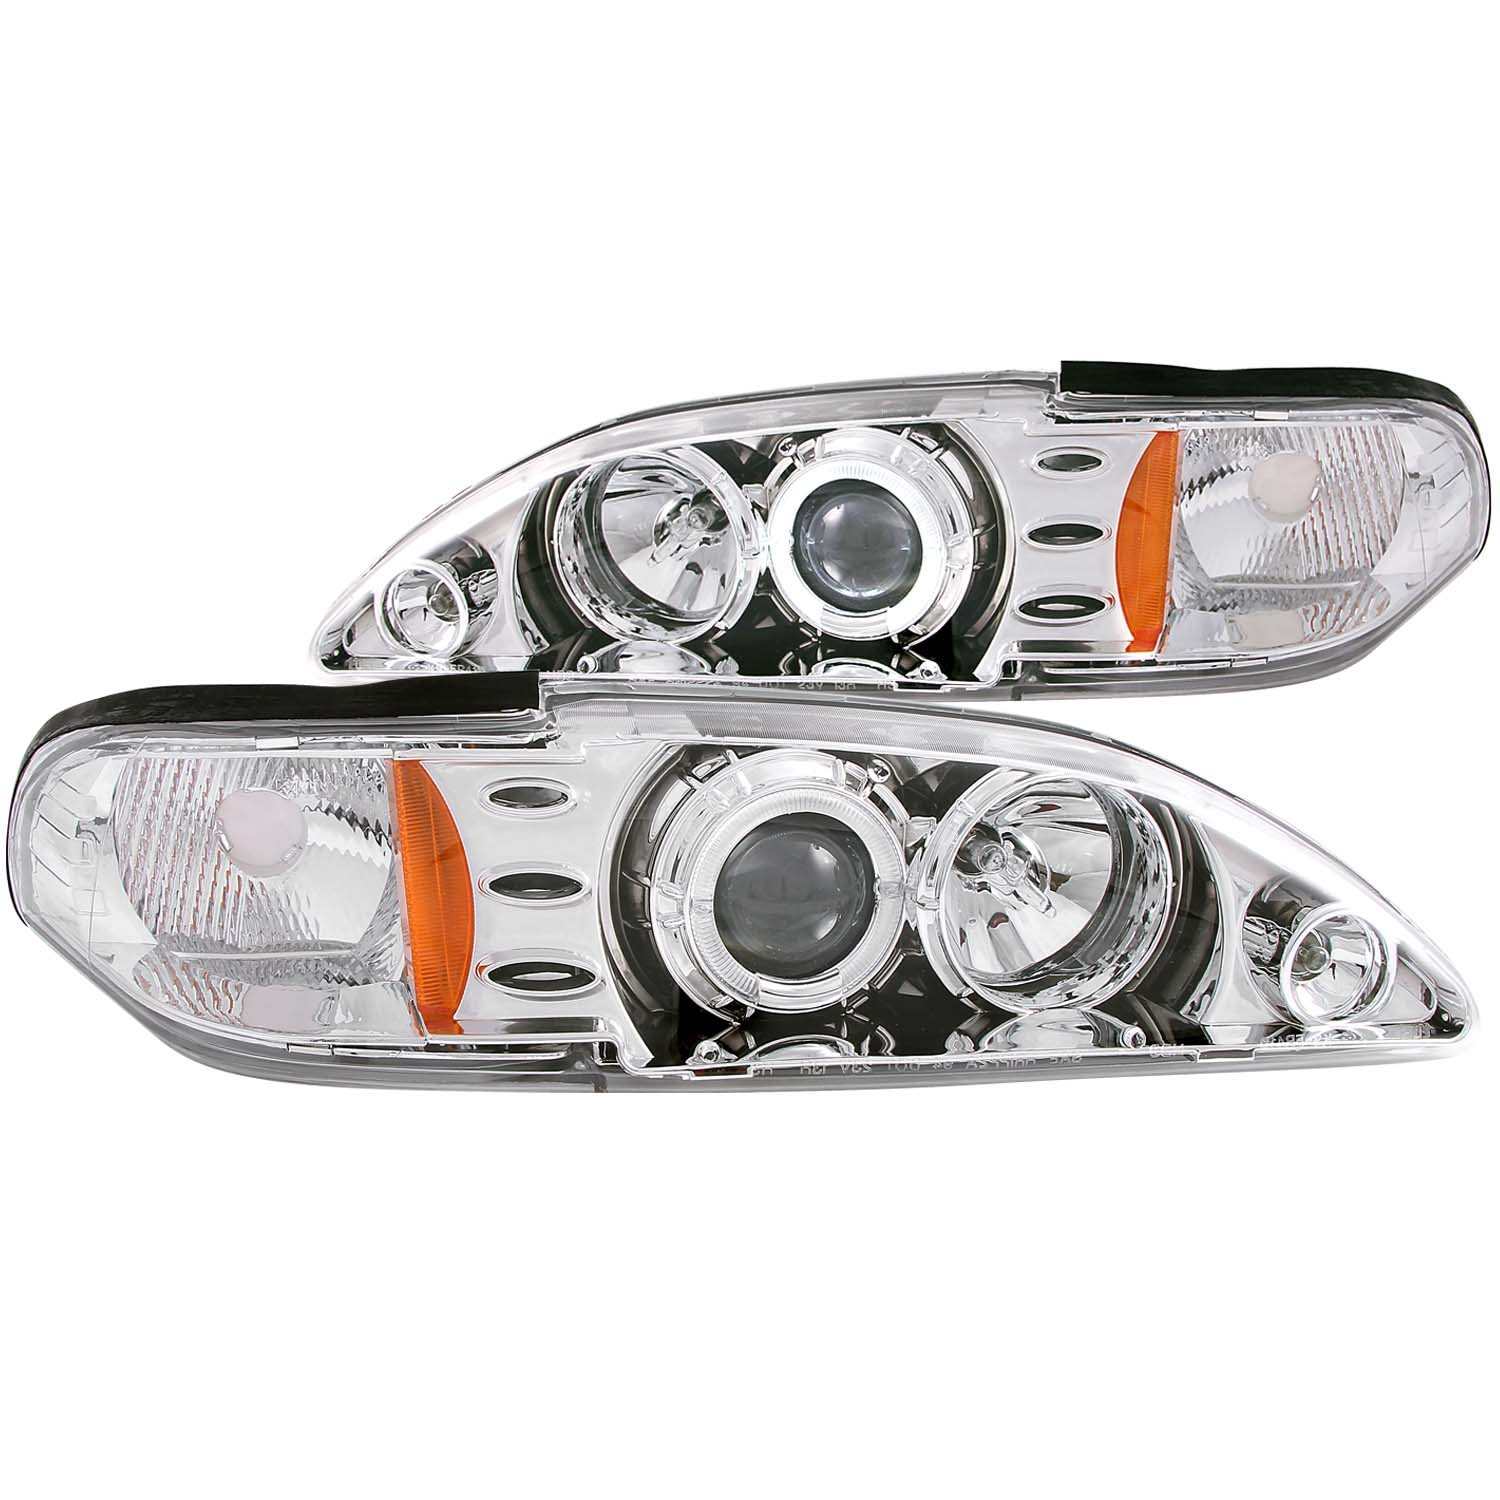 1994-1998 Ford Mustang ANZO Projector HALO Headlights w/Halogen Bulbs & Chrome Housing